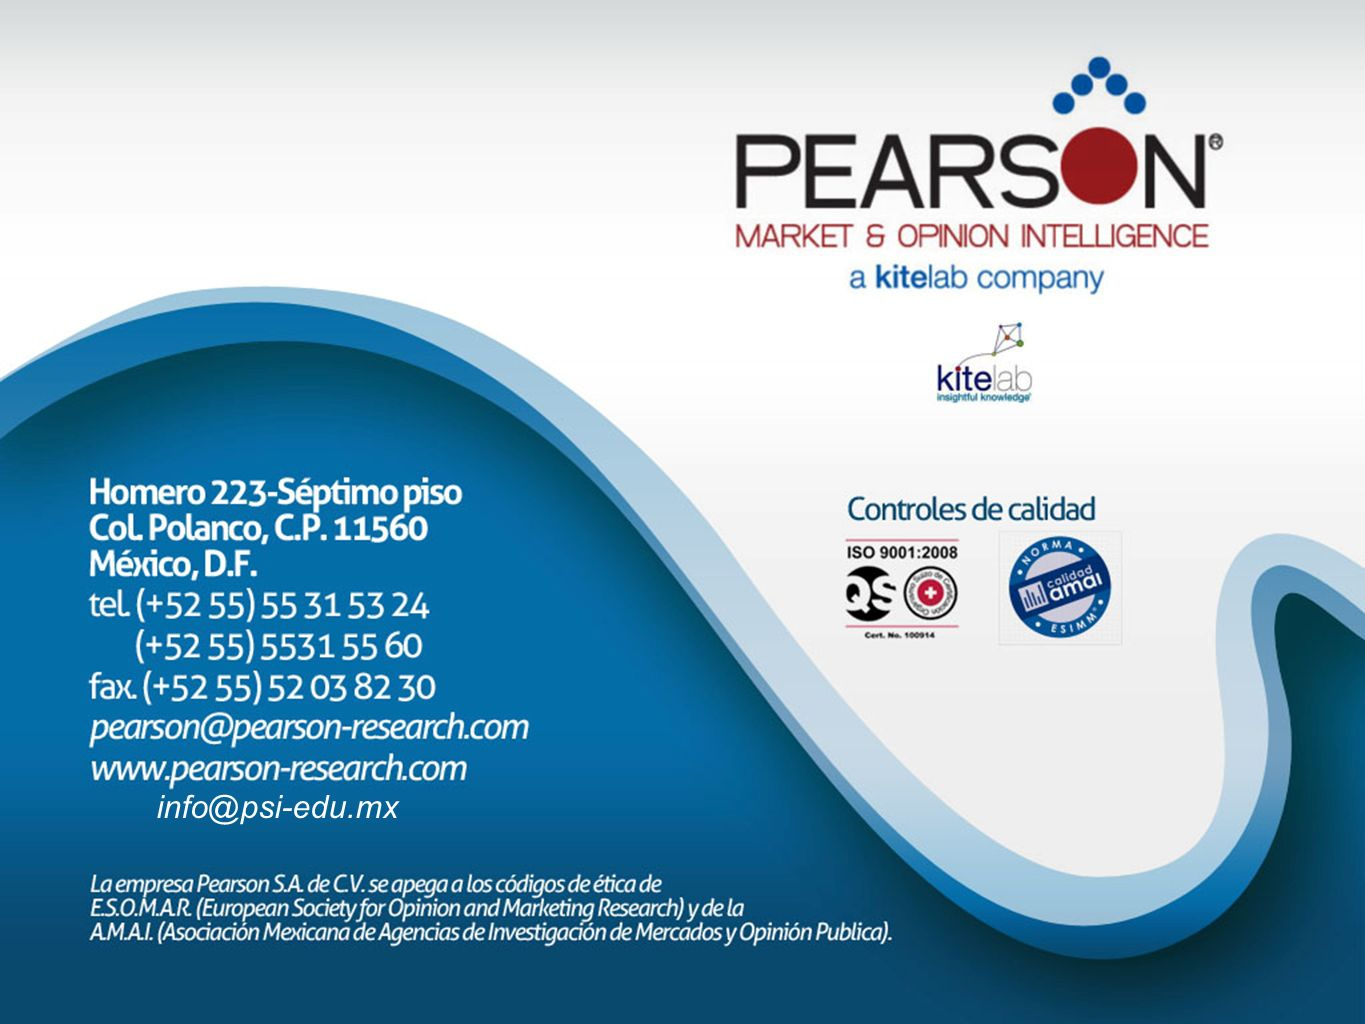 info@psi-edu.mx